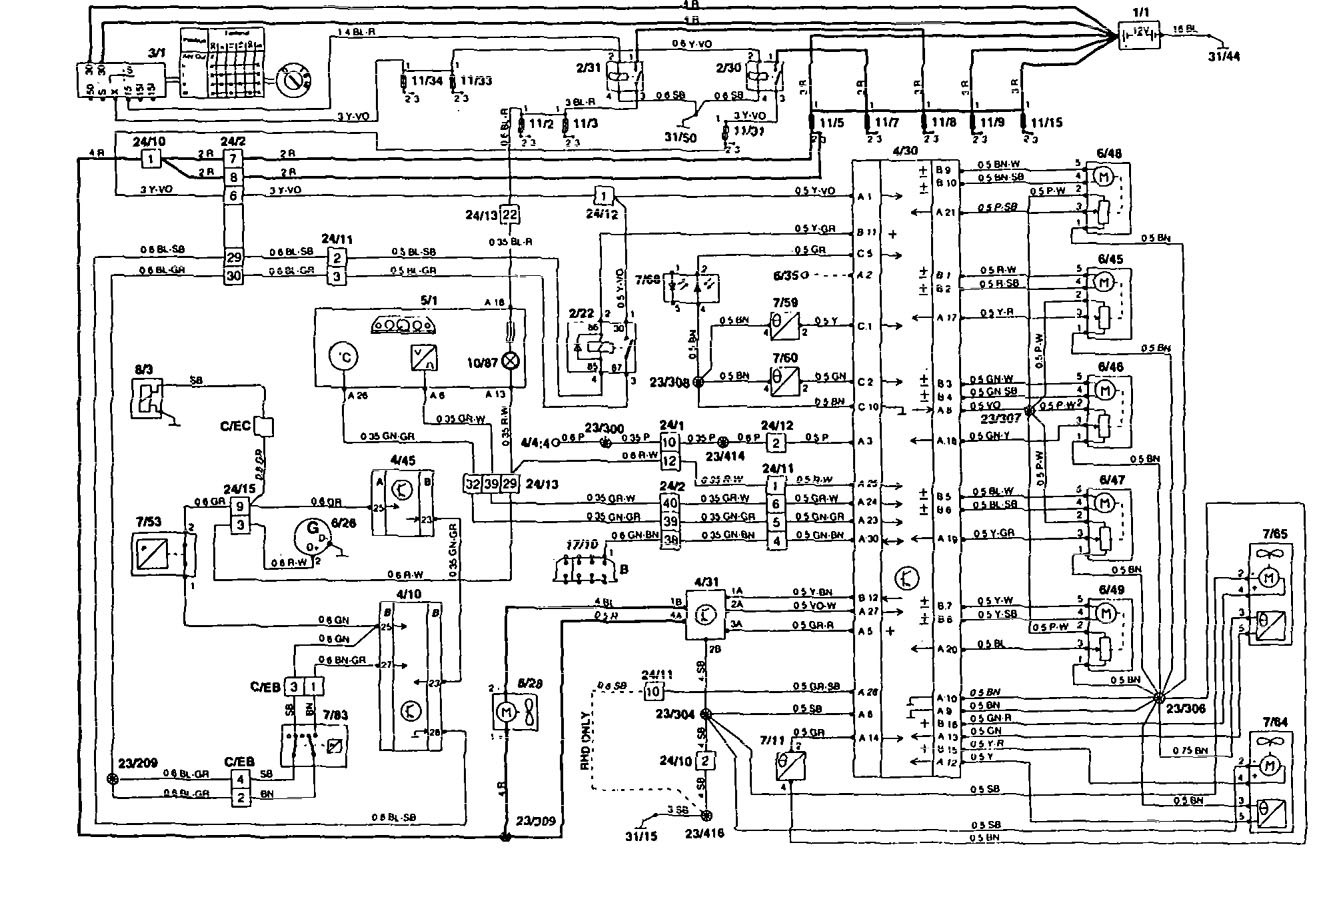 volvo 850 wiring diagram hvac controls 1 1995 volvo 850 (1995) wiring diagrams hvac controls carknowledge hvac control wiring diagram at gsmx.co